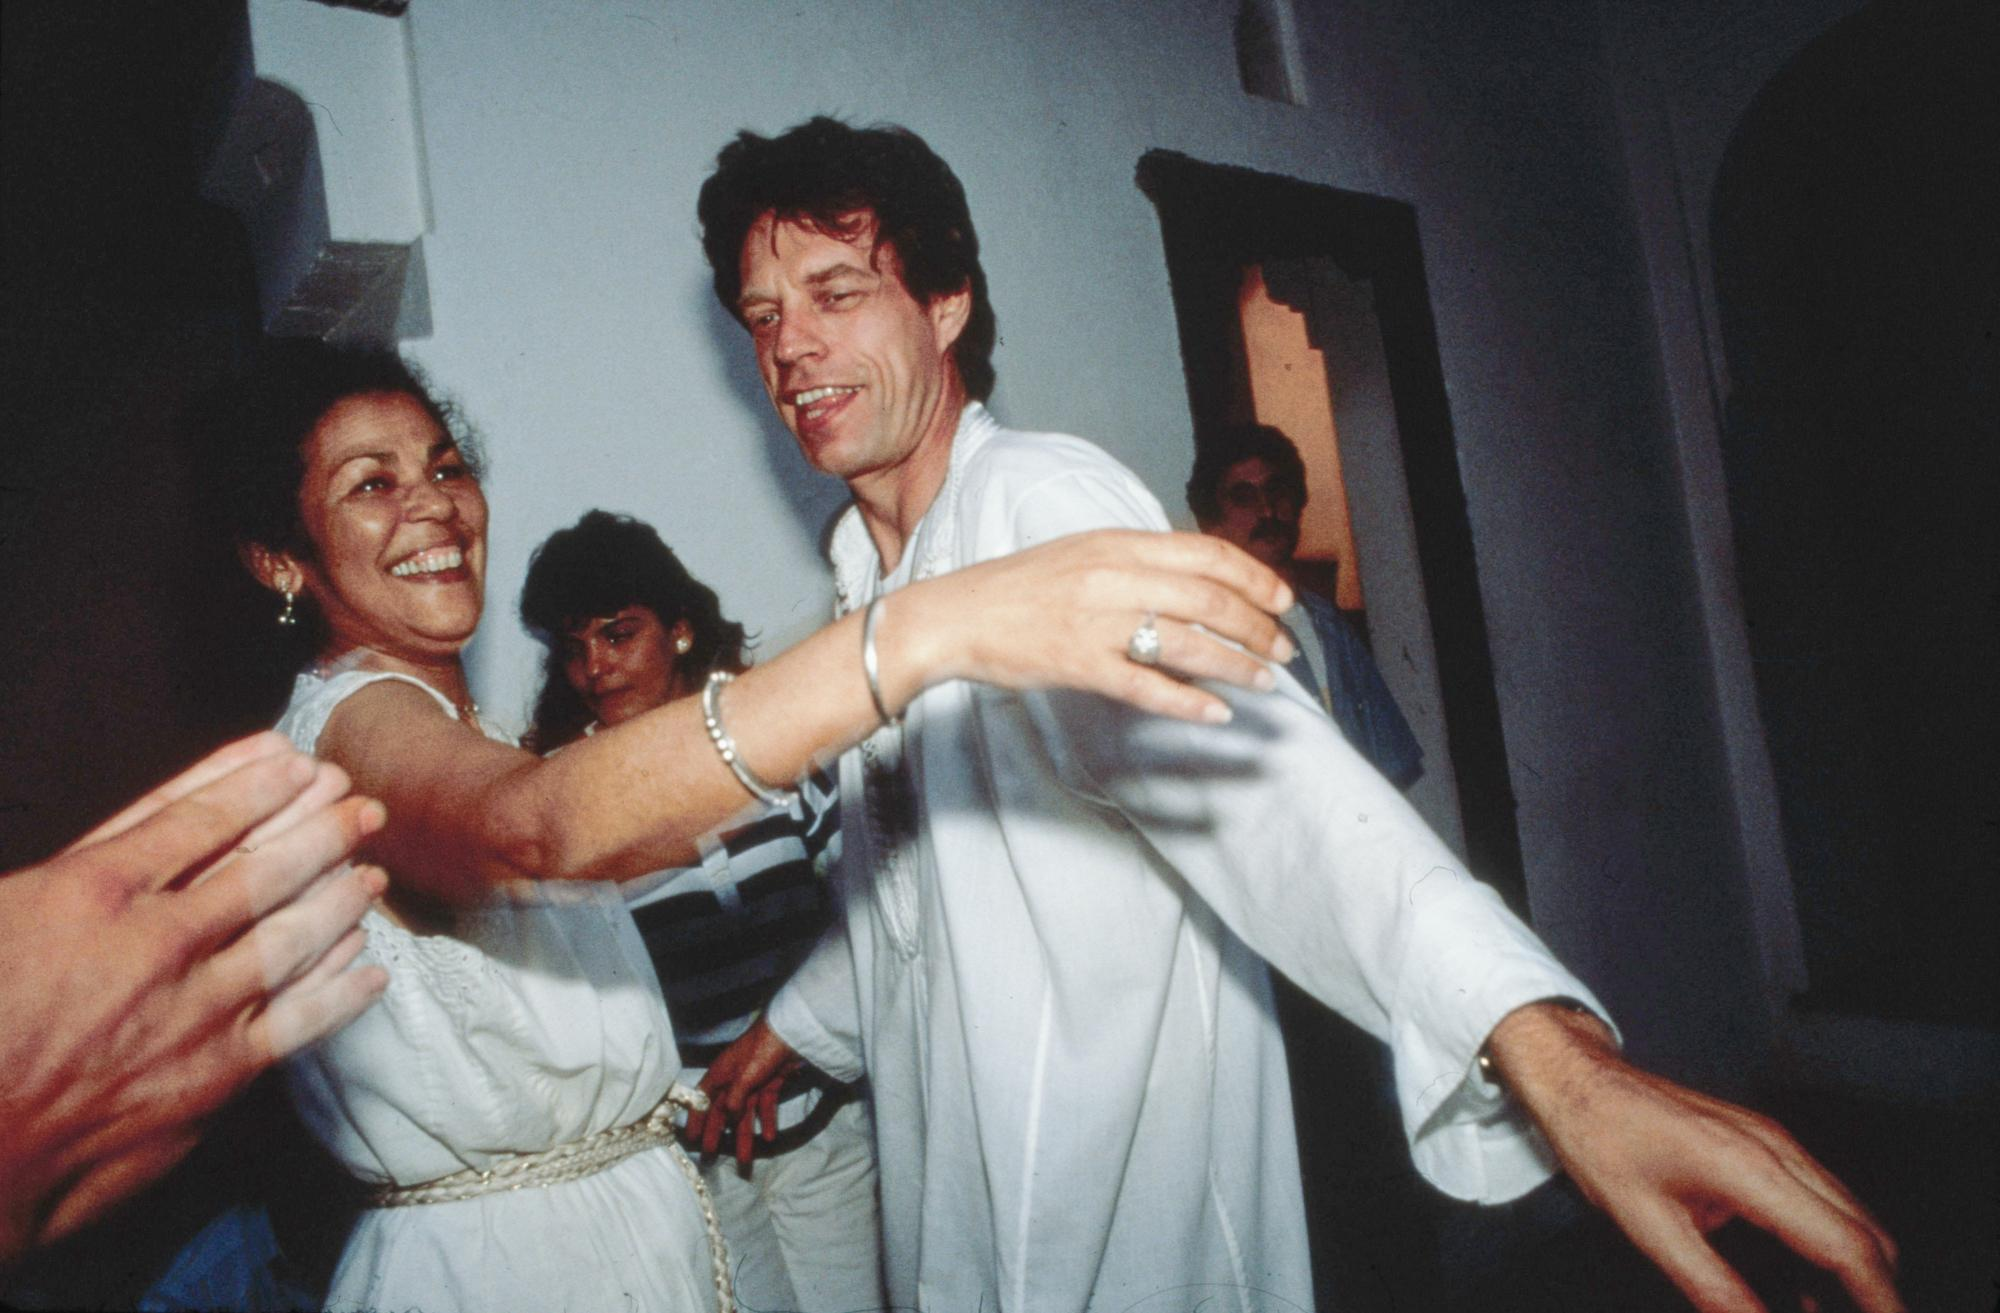 Kadija and Mick Jagger dancing